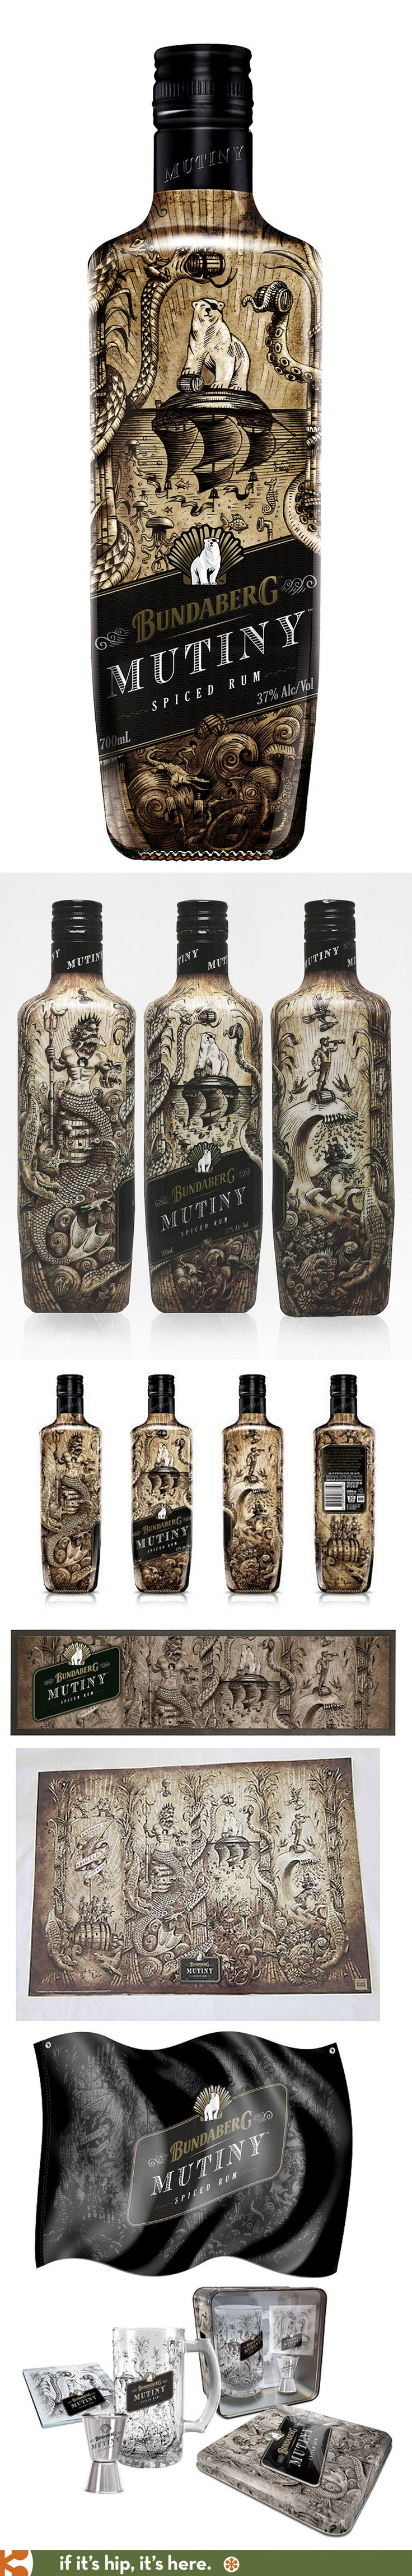 Australia's Bundaberg Mutiny Spiced Rum has a wonderfully illustrated bottle and collateral pieces.